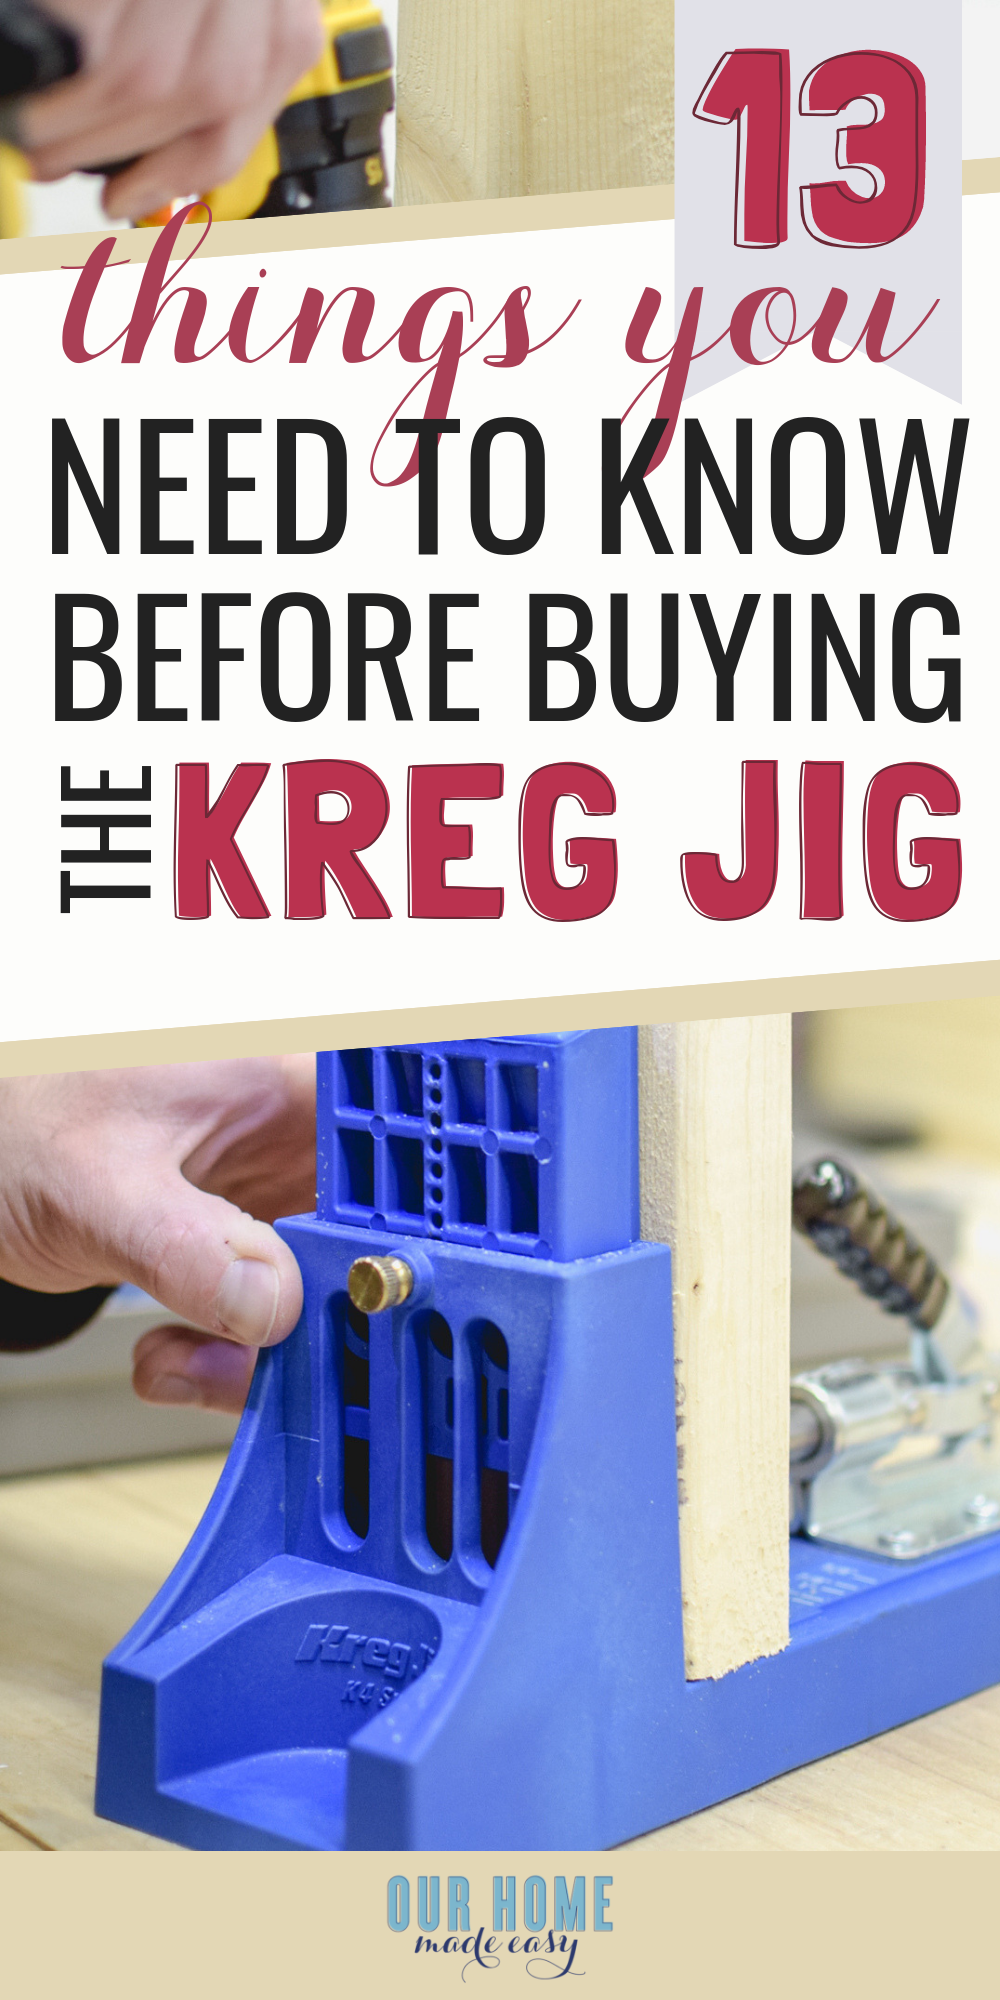 Here is everything you need for beginners who want to use the Kreg Jig. Before you buy, look at the 13 things you need to know before buying! #home #diy #ourhomemadeeasy